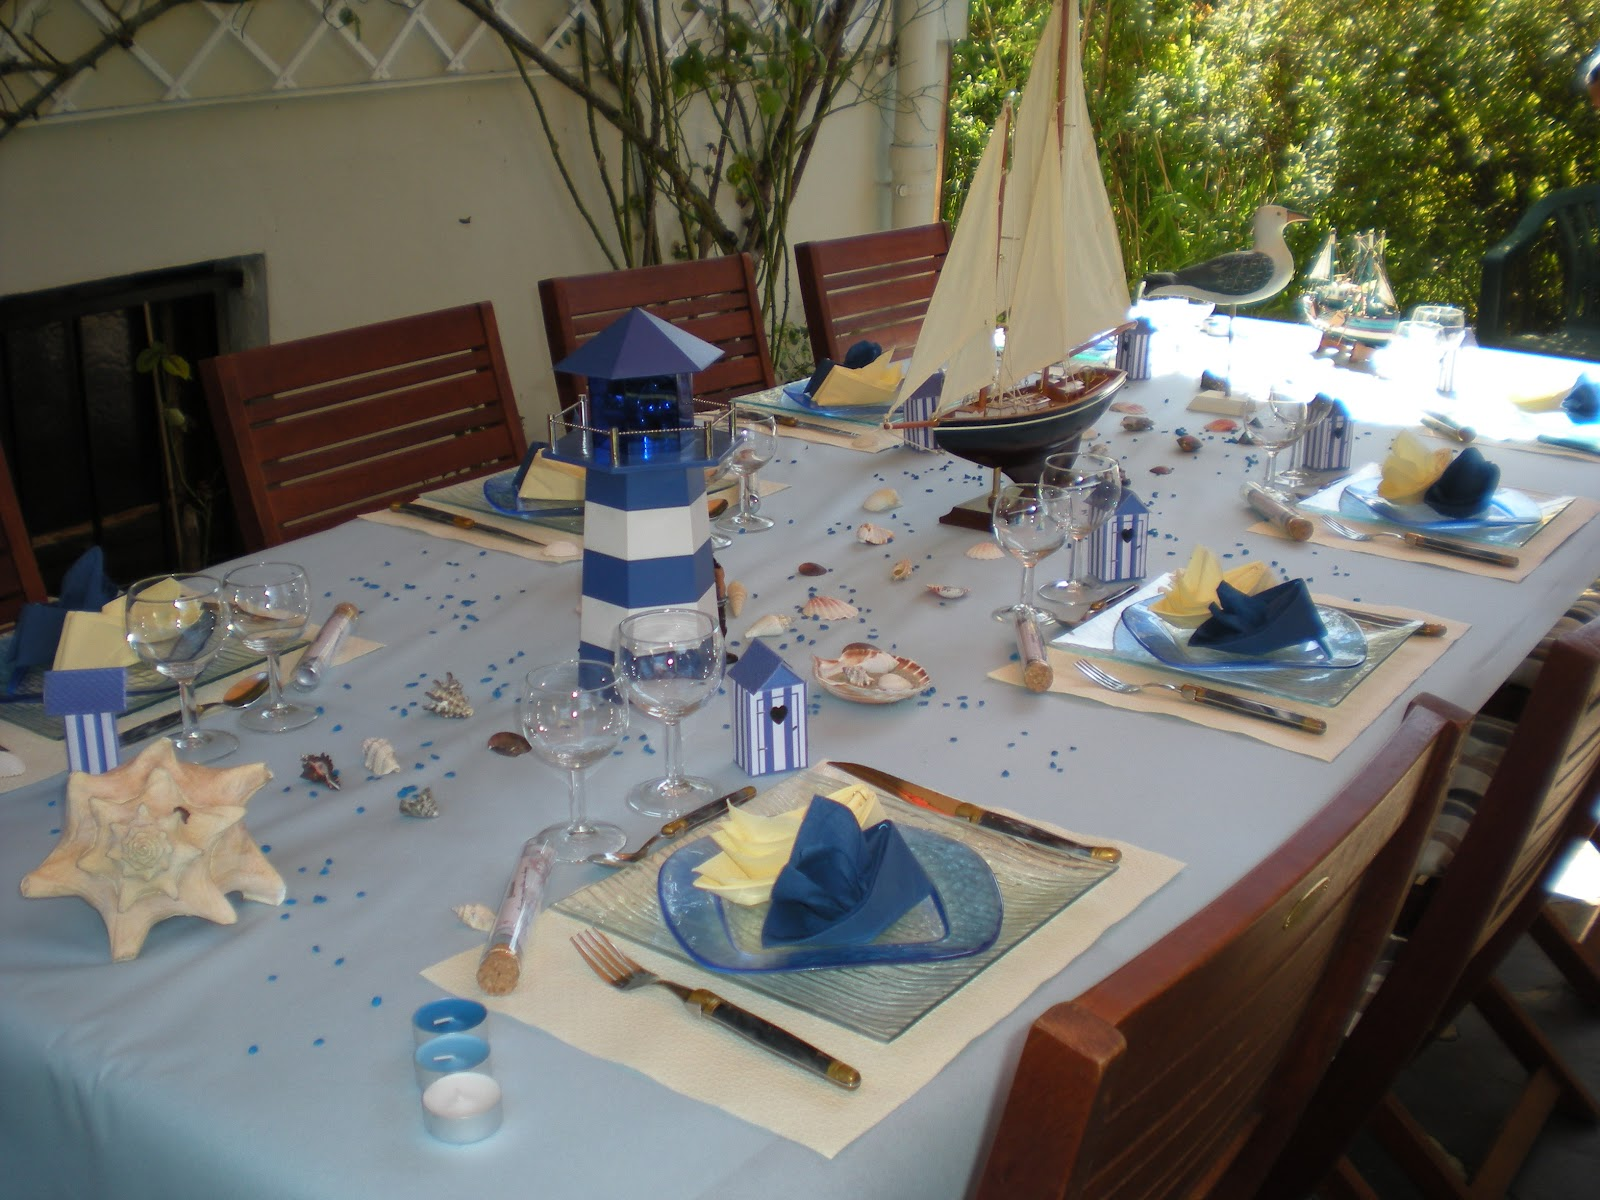 D coration sur le th me de la mer d co de table Decoration table mer